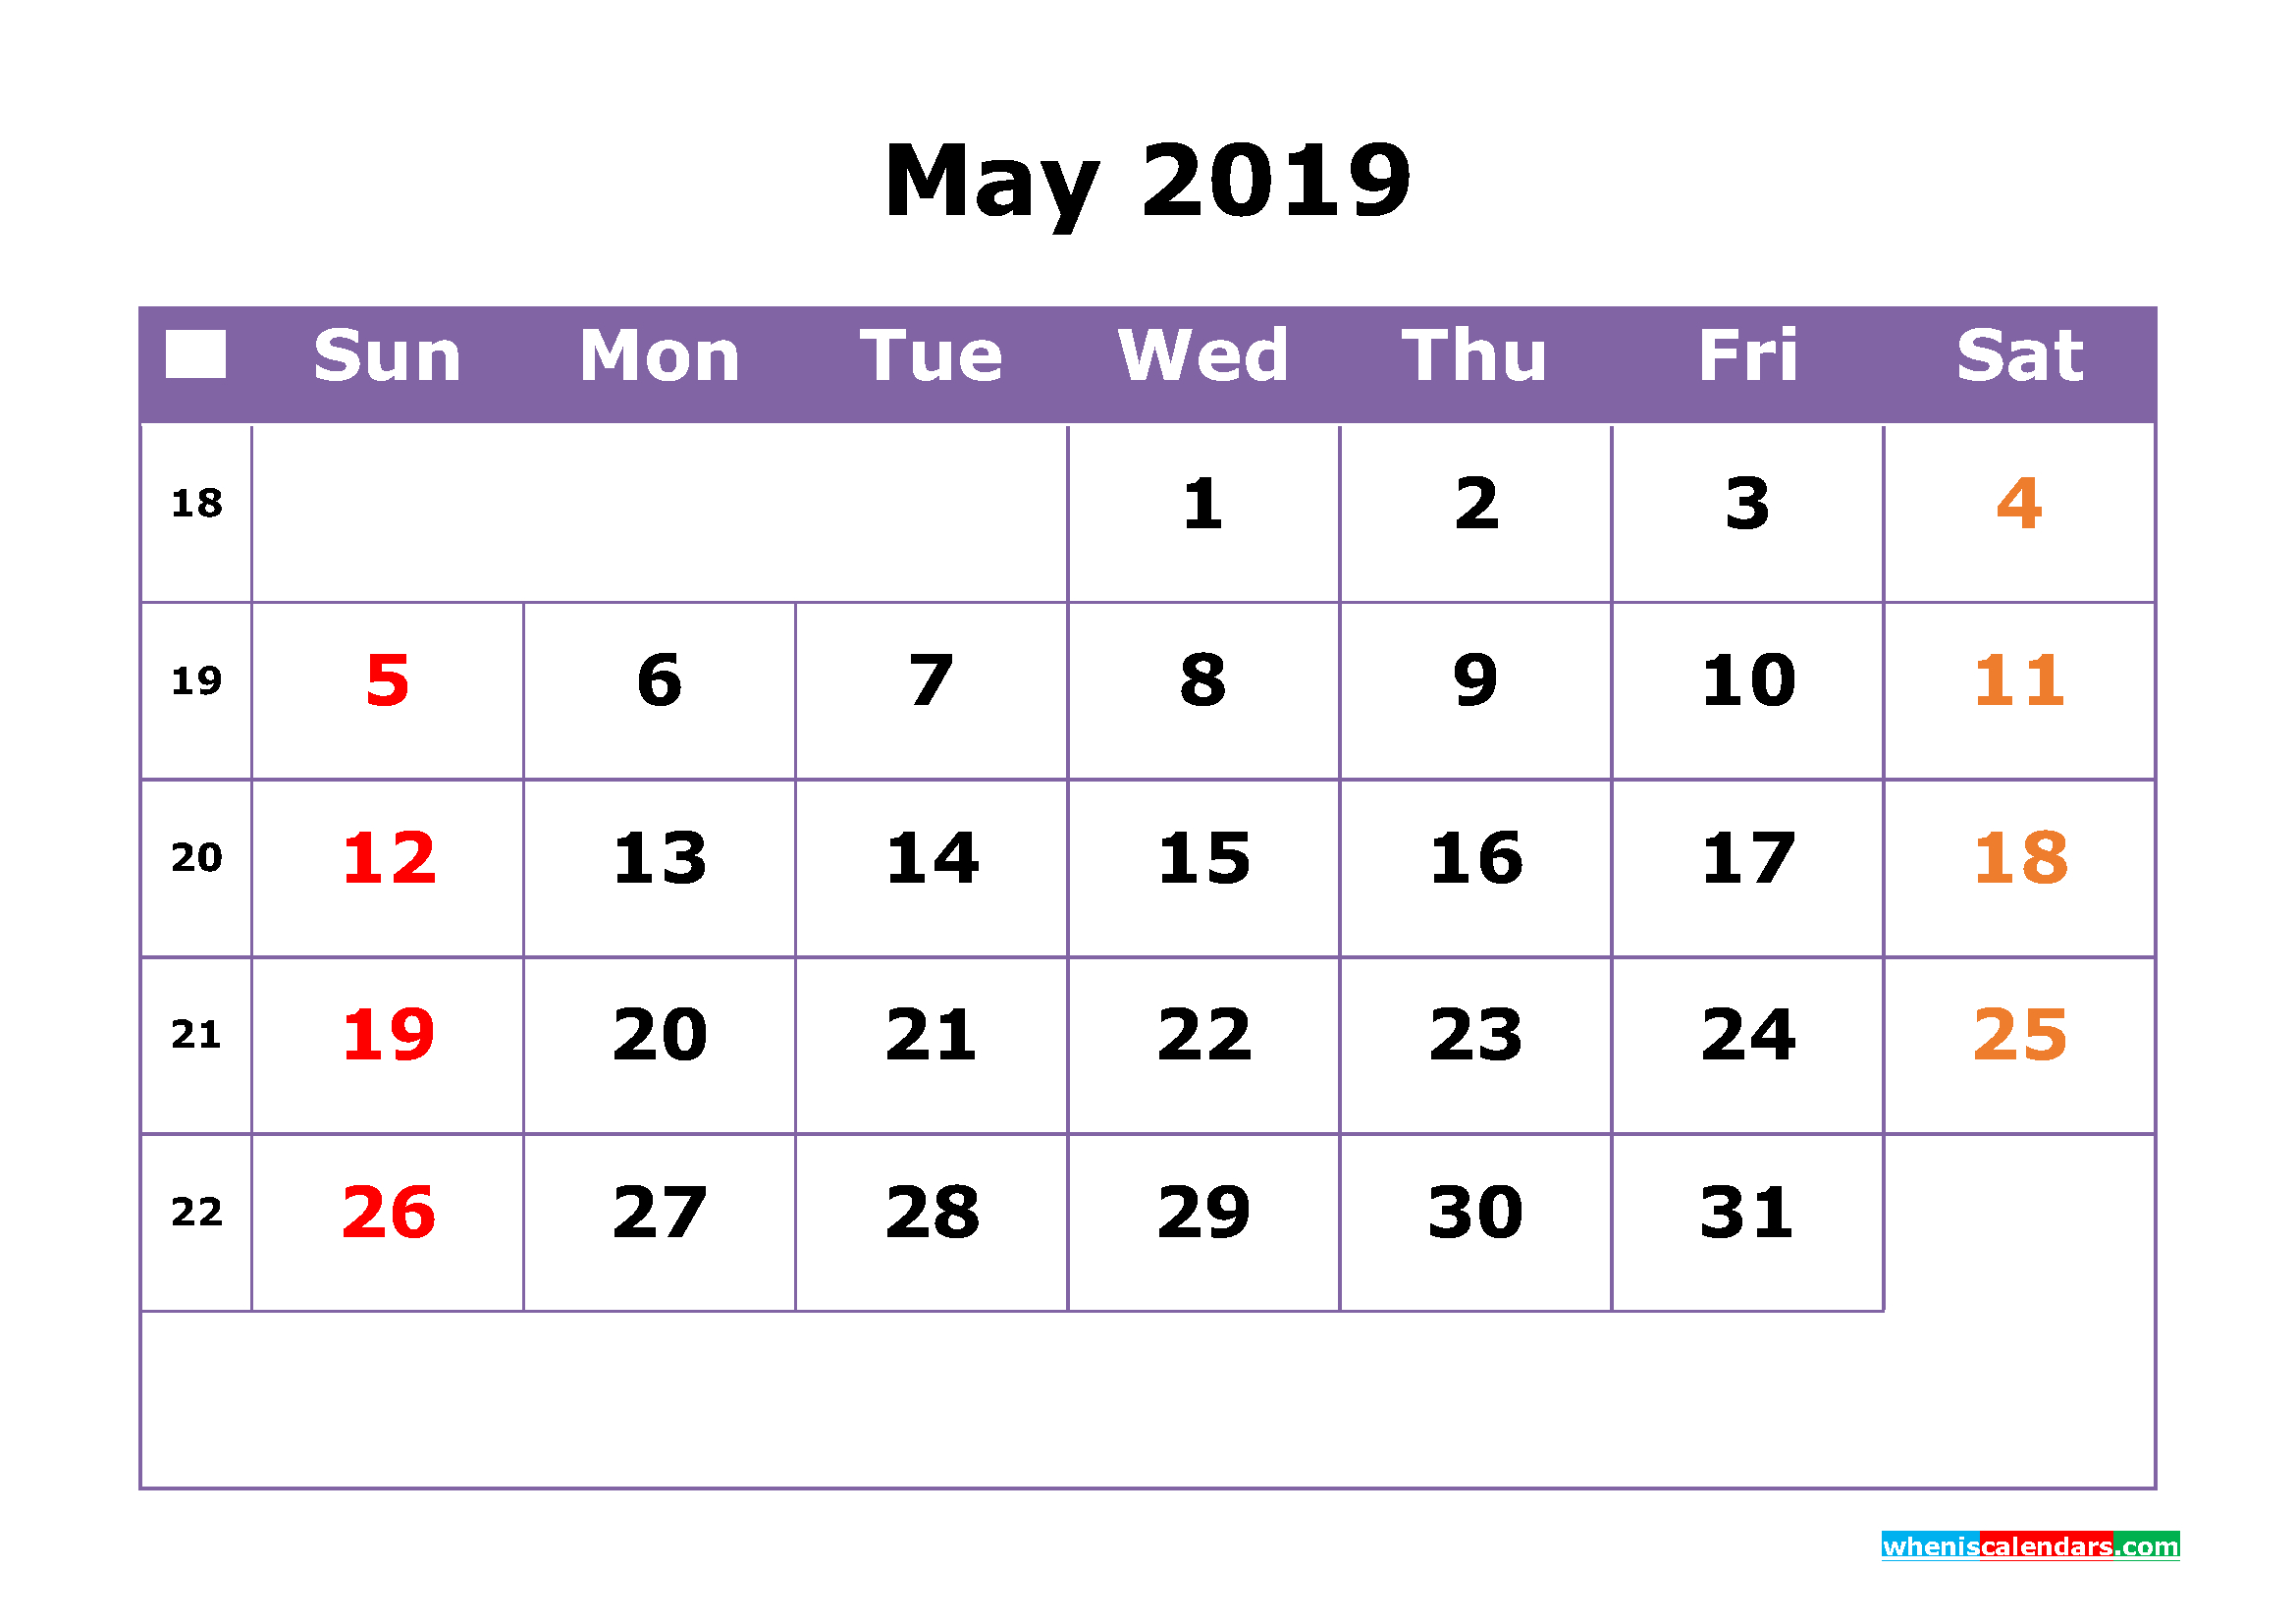 May 2019 Printable Calendar With Week Numbers For Free within Printable Calendar By Week